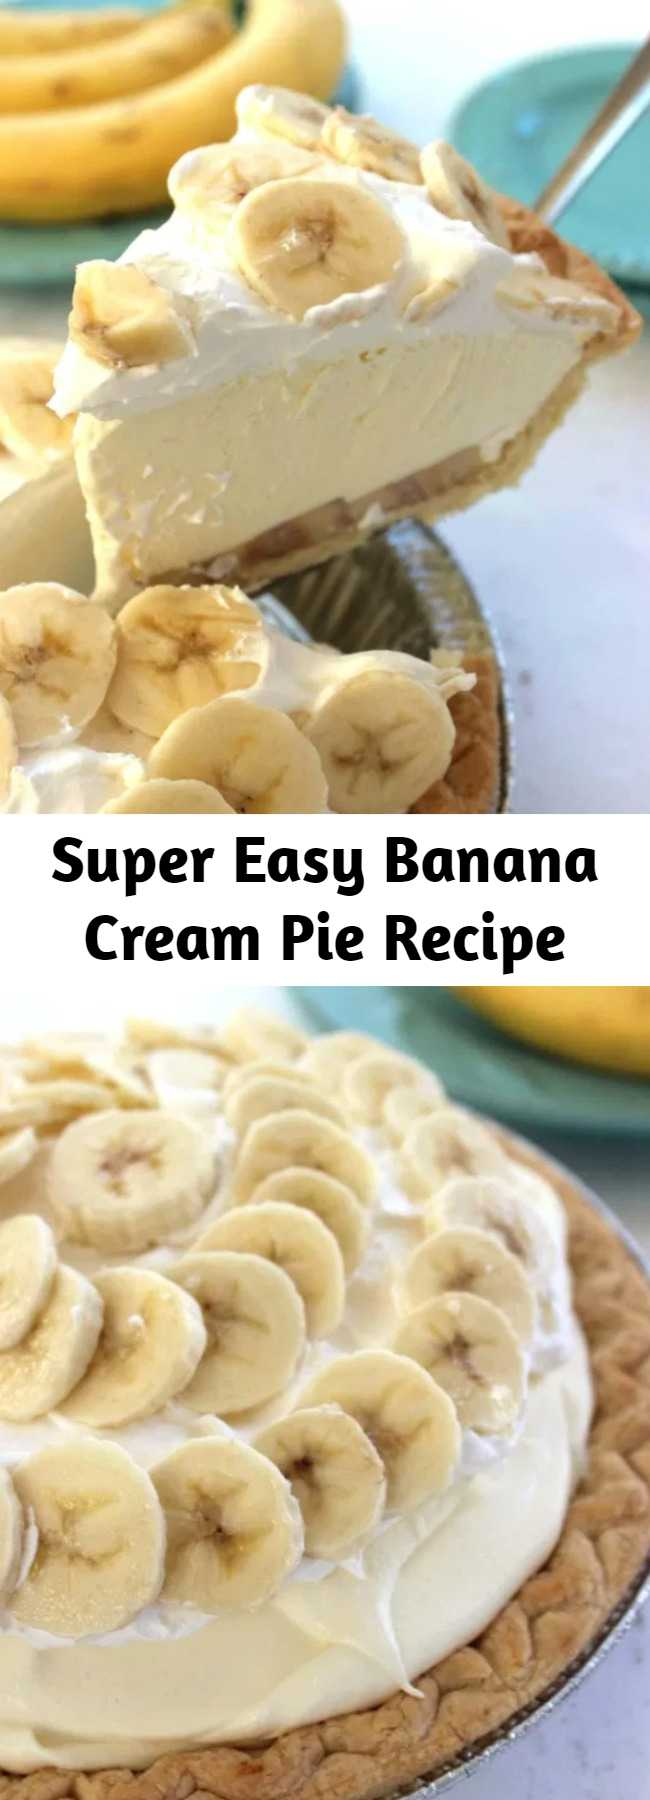 Super Easy Banana Cream Pie Recipe - This Easy Banana Cream Pie is one of my favorite quick and easy desserts. Since we use a store-bought crust and instant banana pudding, it can be made in a jiffy. Simple holiday pie.